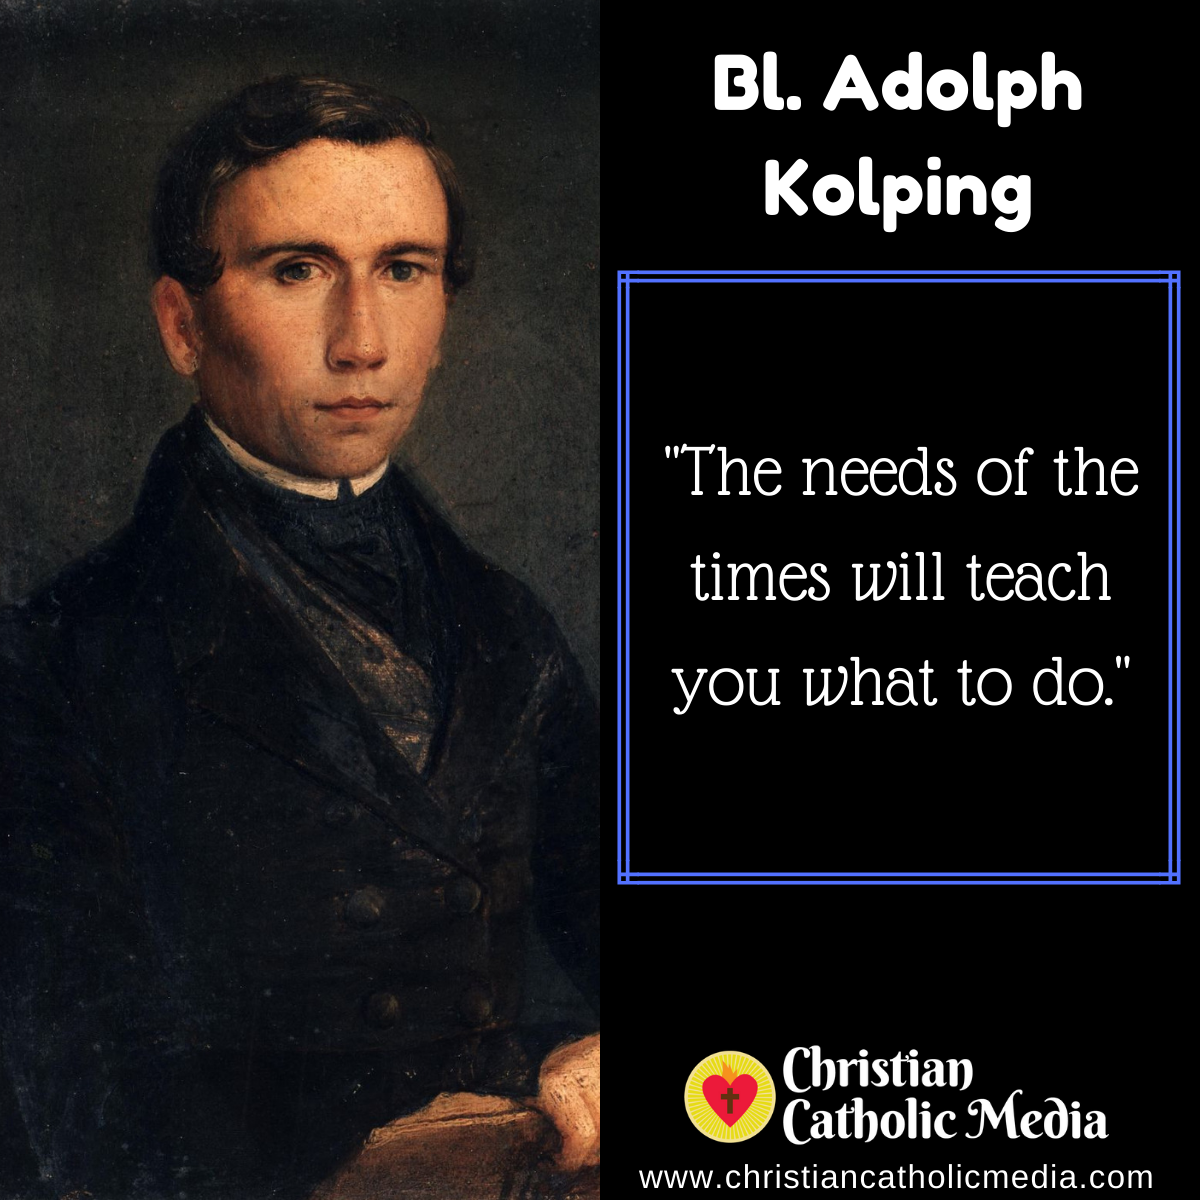 St. Adolph Kolping - Tuesday December 10, 2019